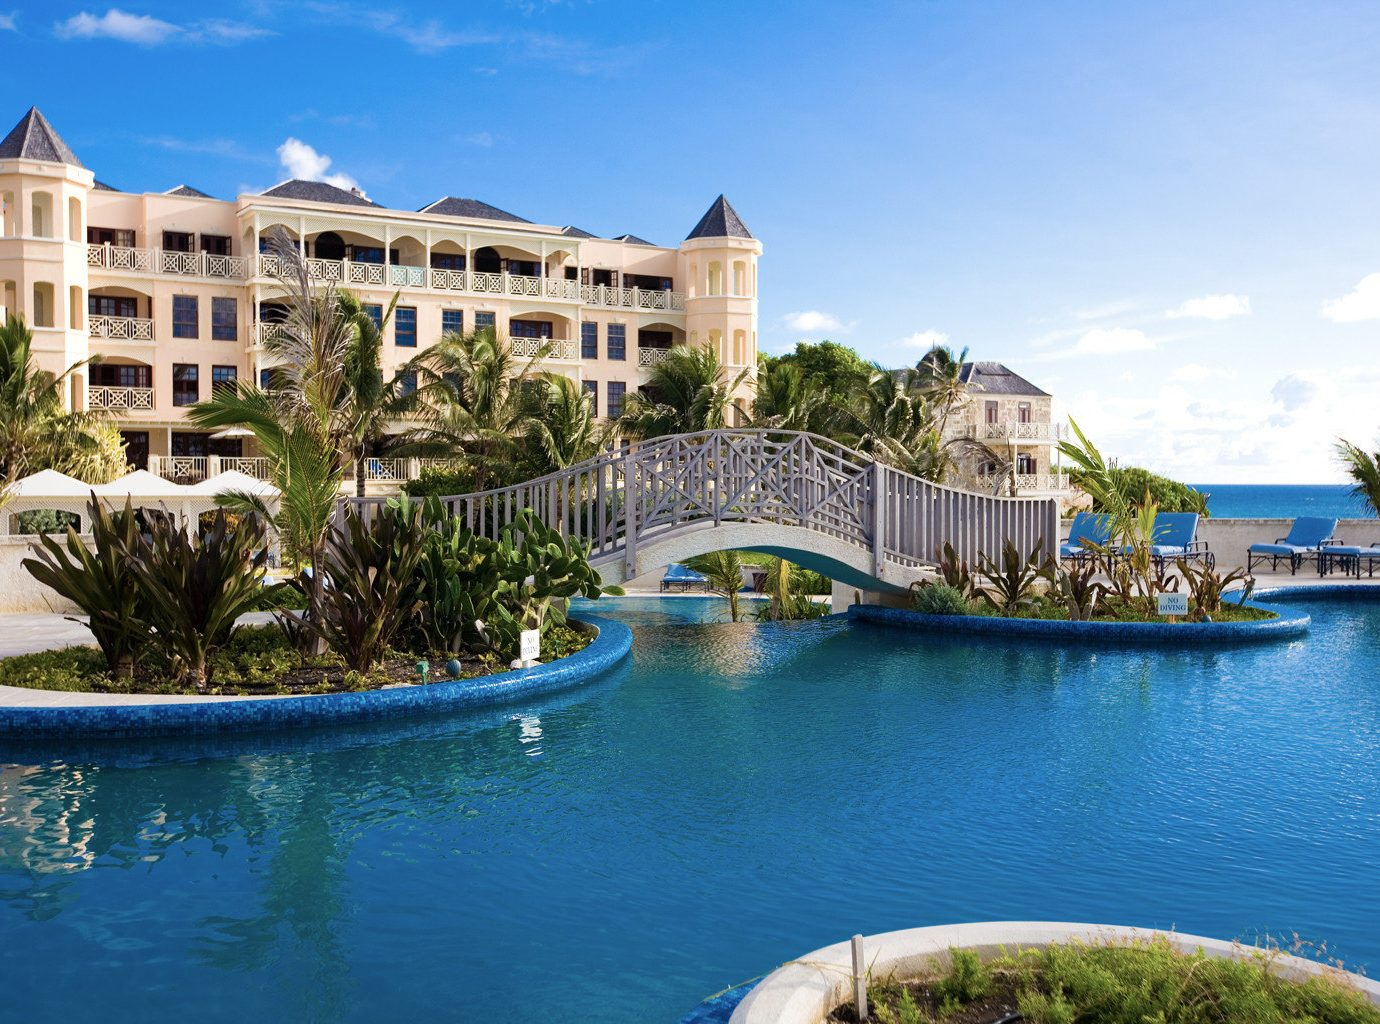 All-Inclusive Resorts Hotels water outdoor sky Boat property leisure swimming pool Resort estate vacation resort town home Villa River palace condominium mansion Lake real estate Harbor bay Sea blue swimming surrounded